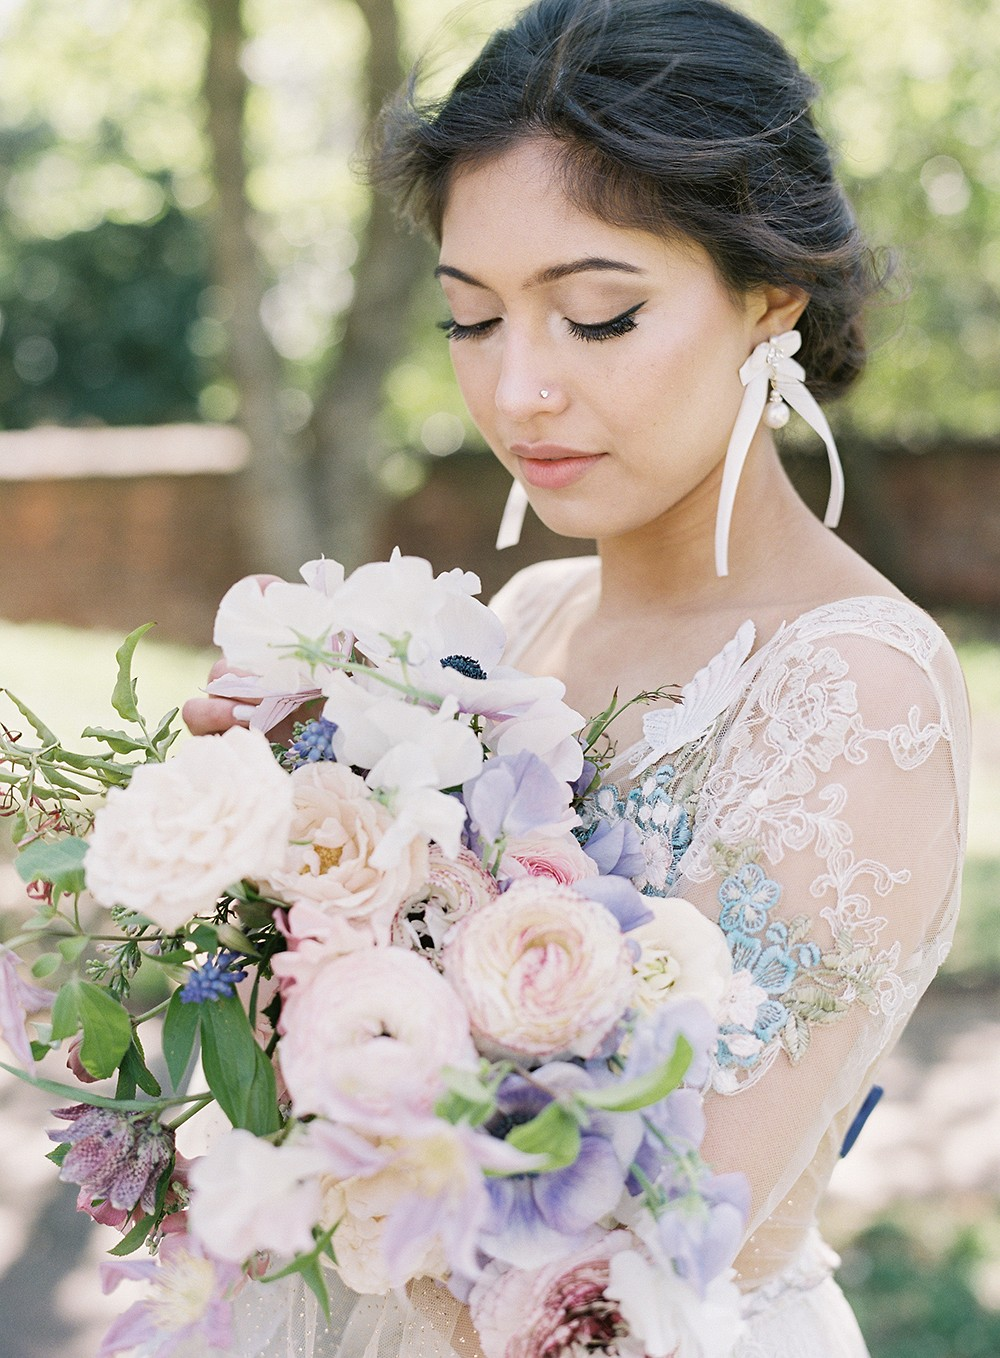 Romantic fairytale editorial with pastel spring blooms